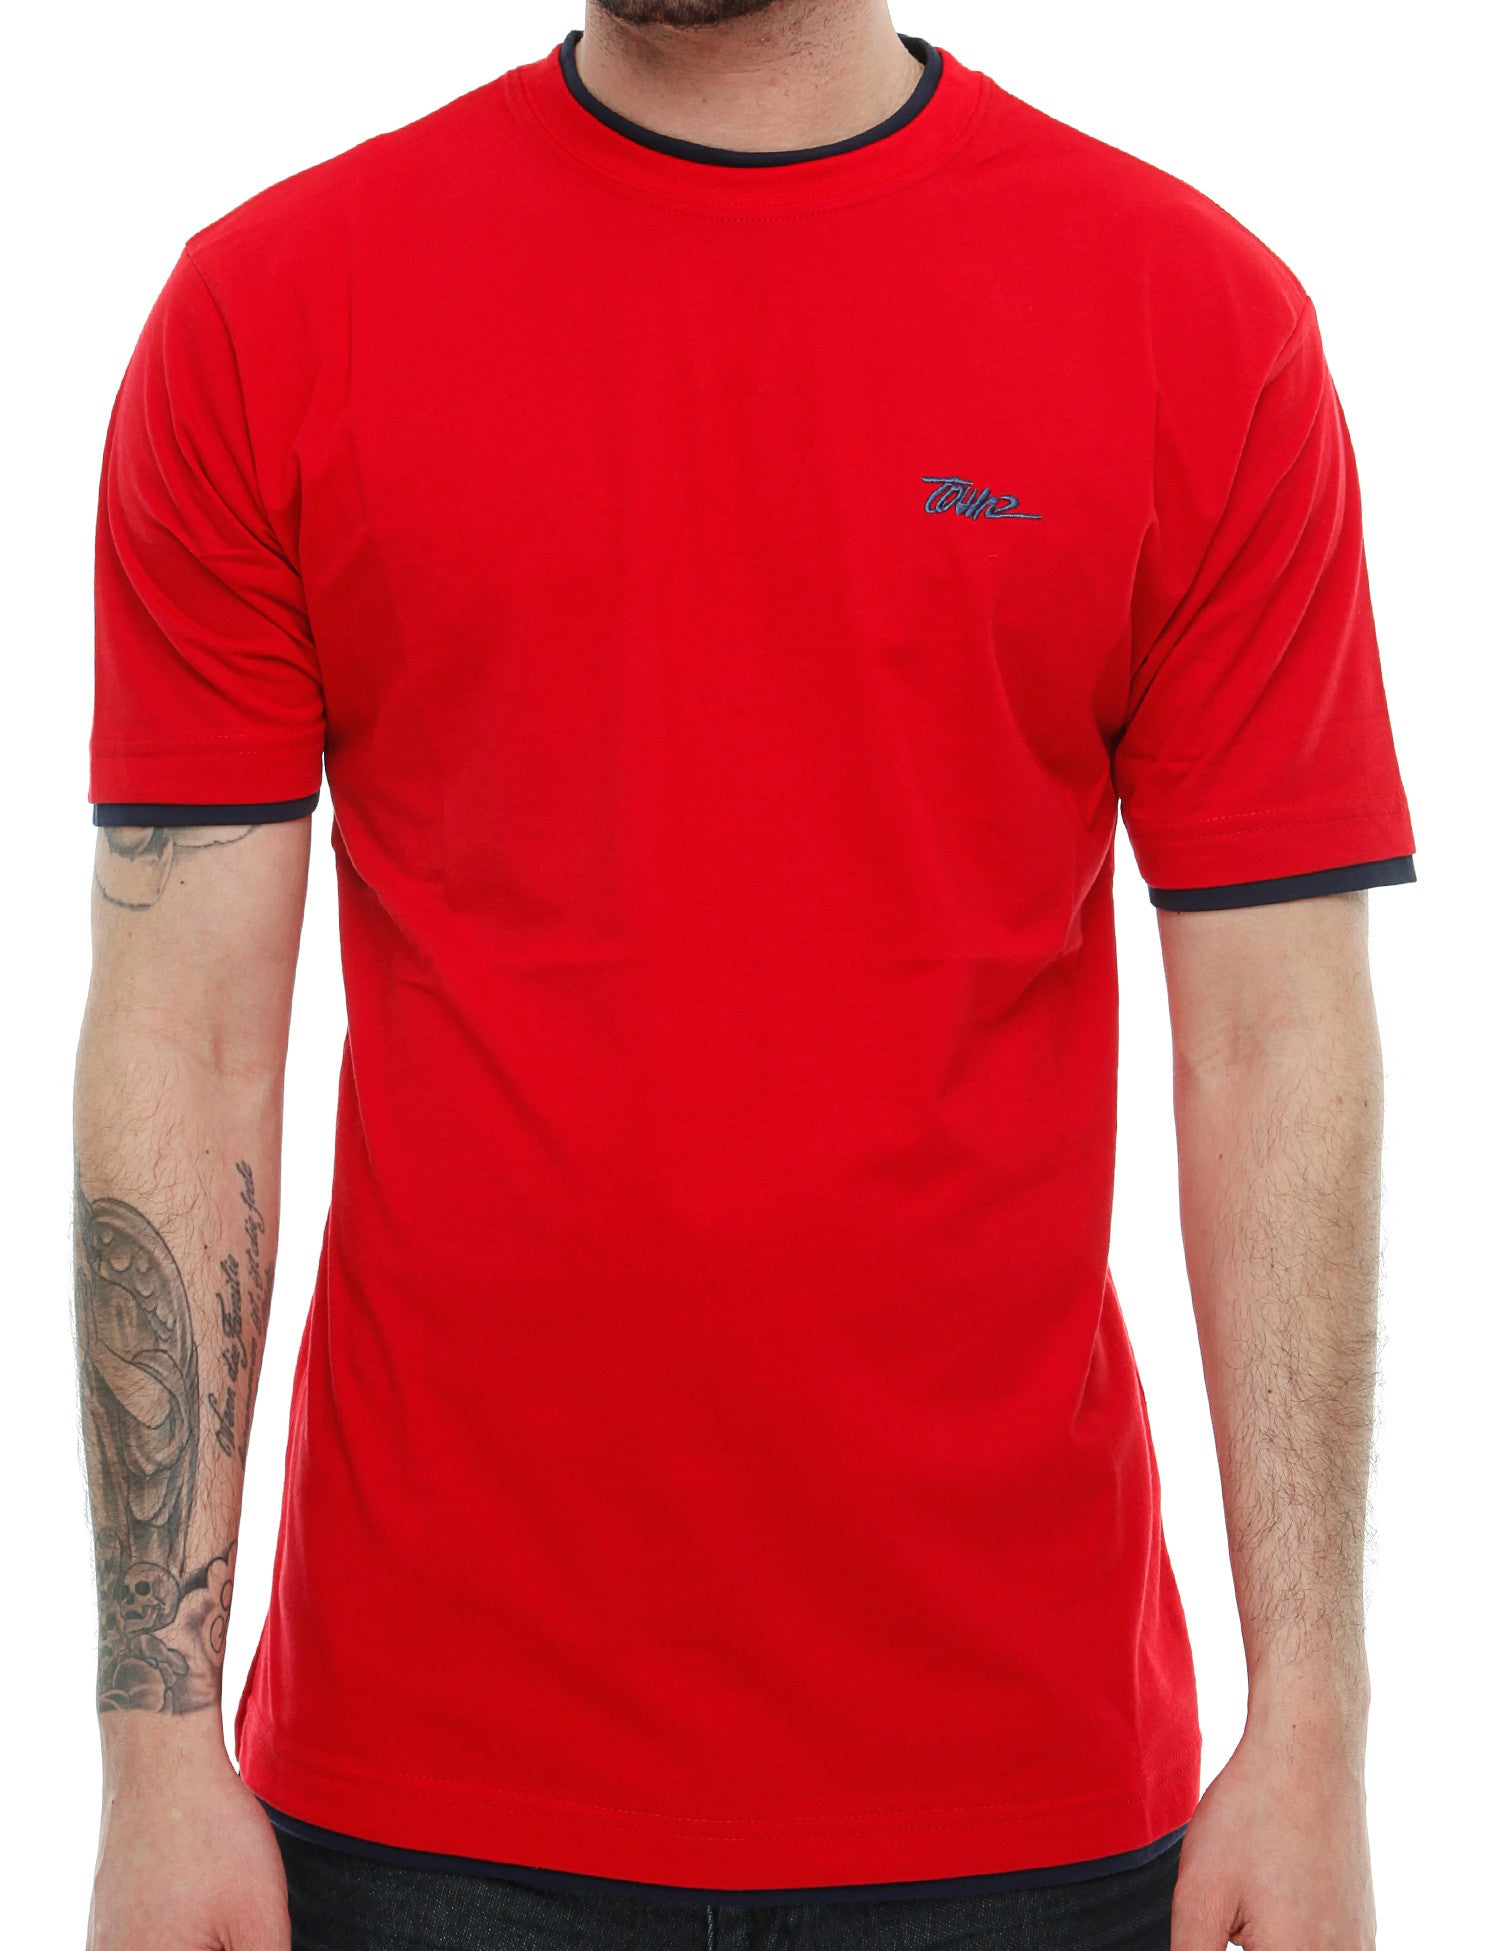 Townz Basic Contrast T-Shirt TNZ16-010 Red